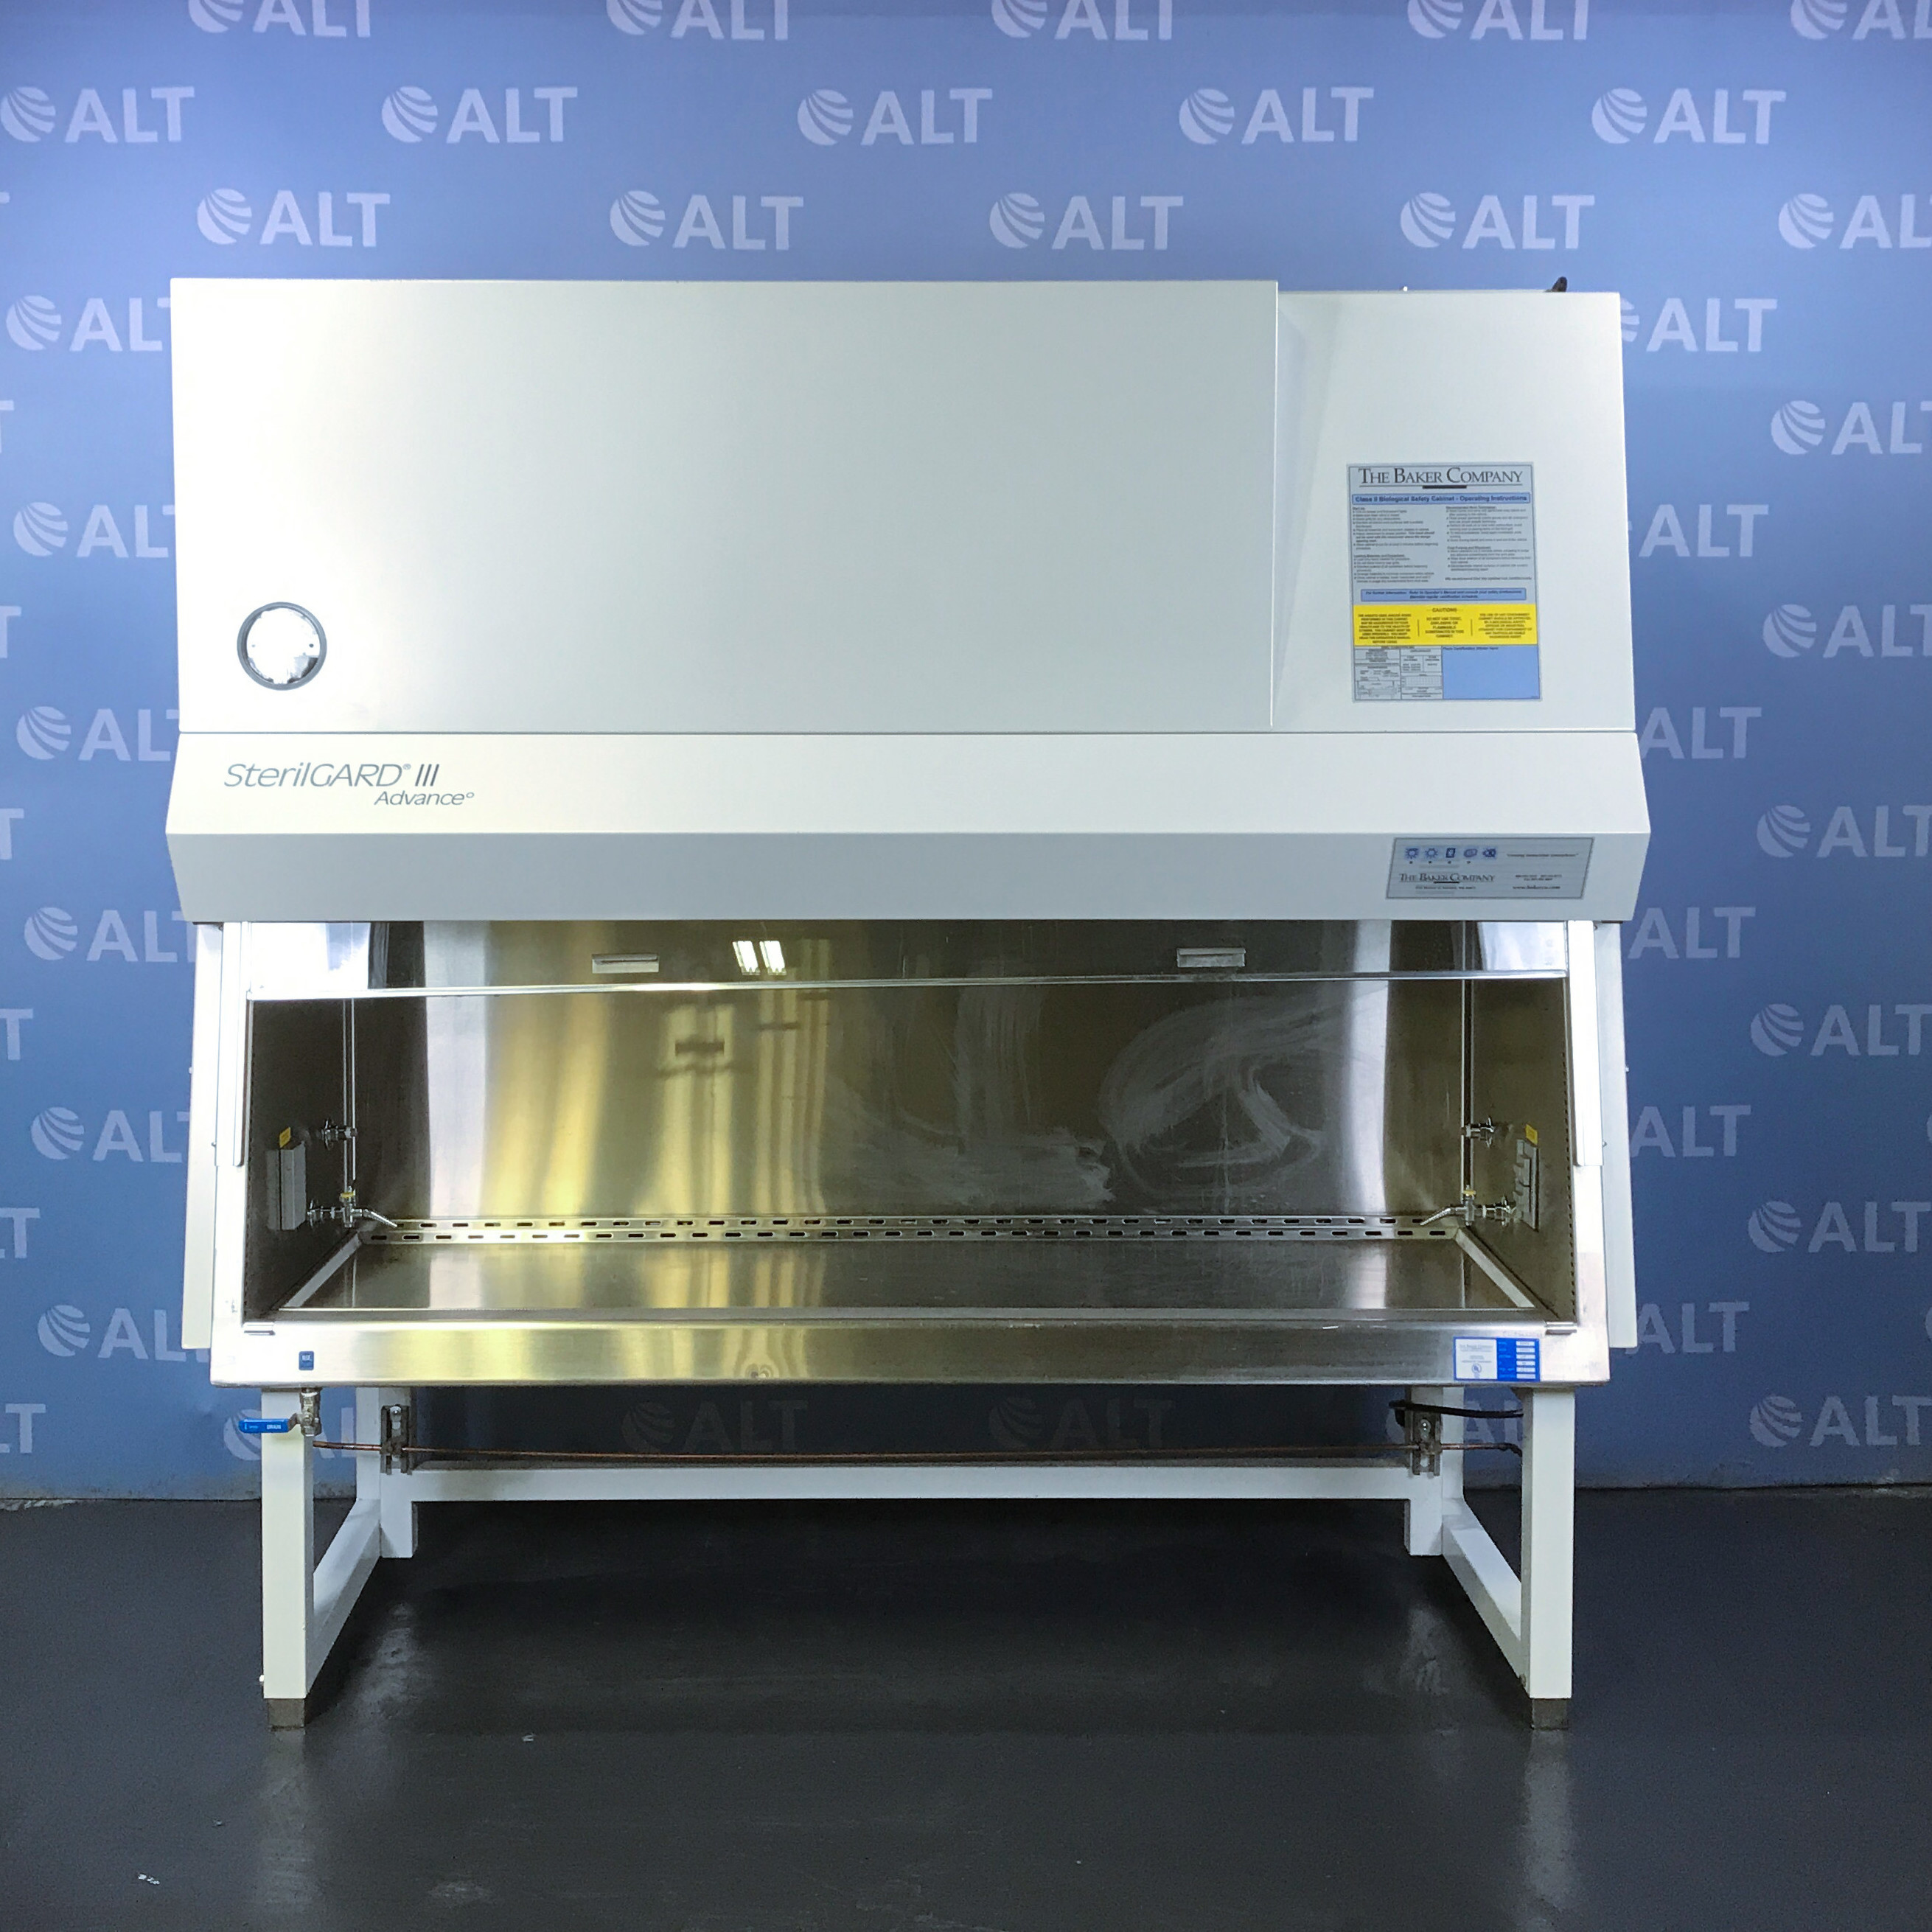 SterilGARD III Advance Class II Type A/B3 Biological Safety Cabinet Model SG603 Name